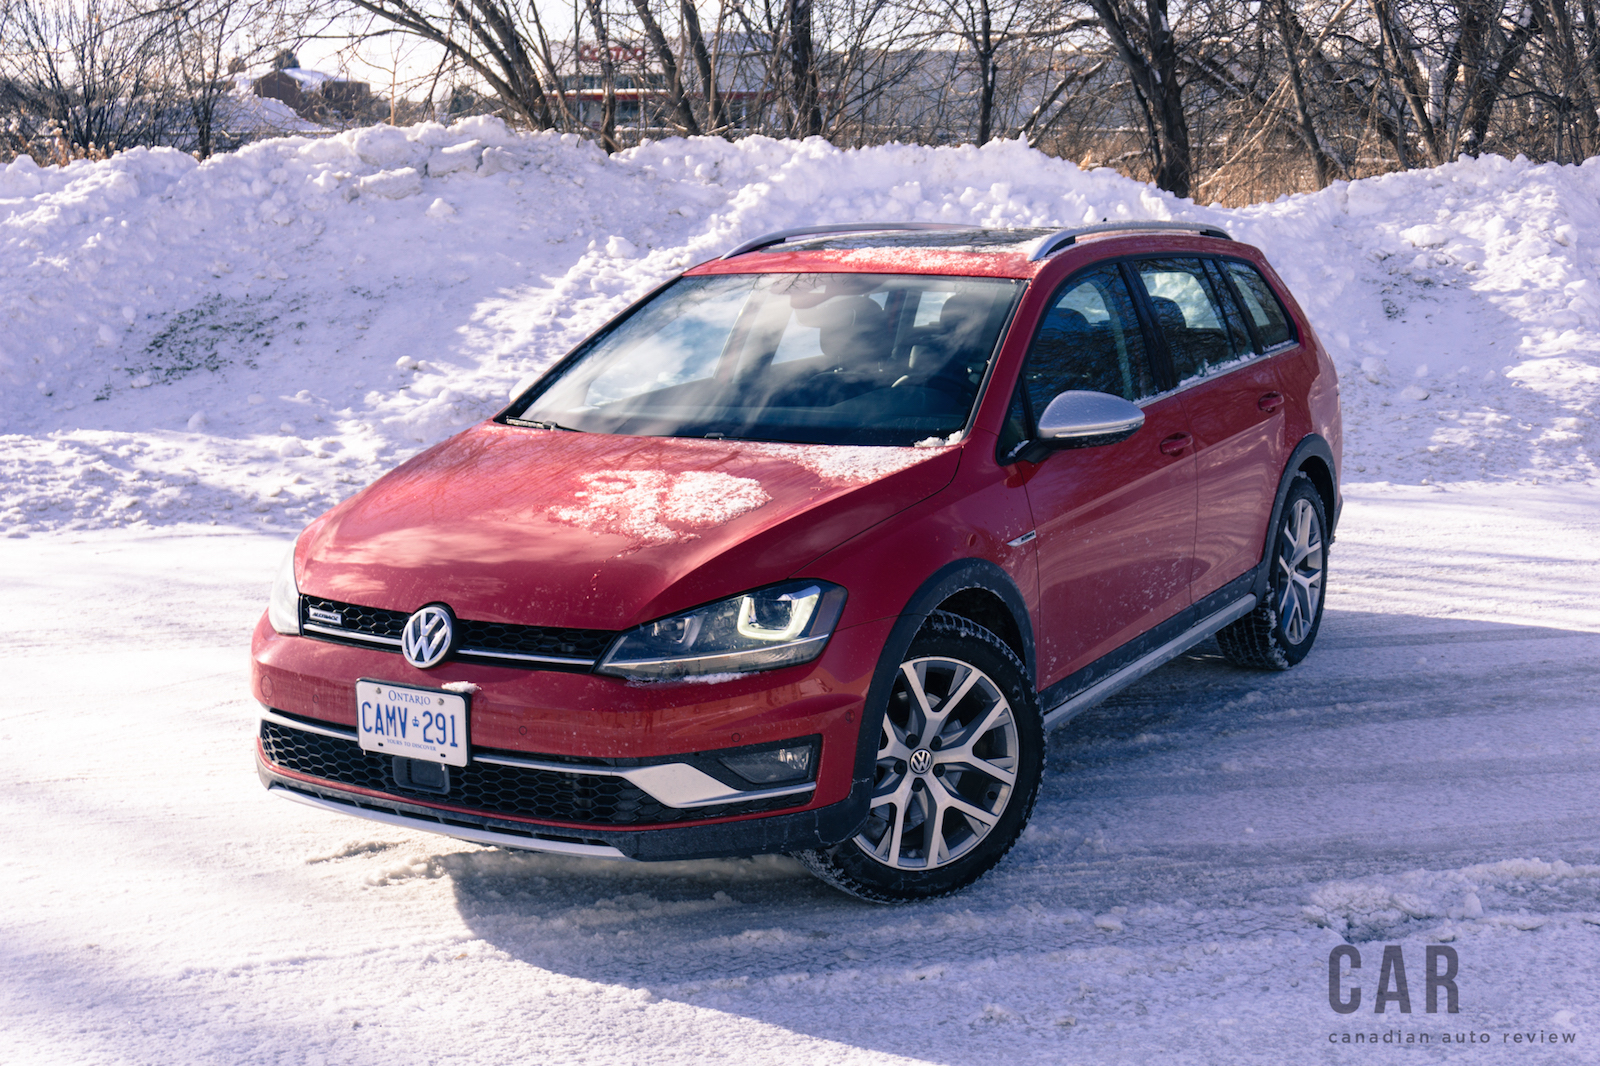 review 2017 volkswagen golf alltrack canadian auto review. Black Bedroom Furniture Sets. Home Design Ideas